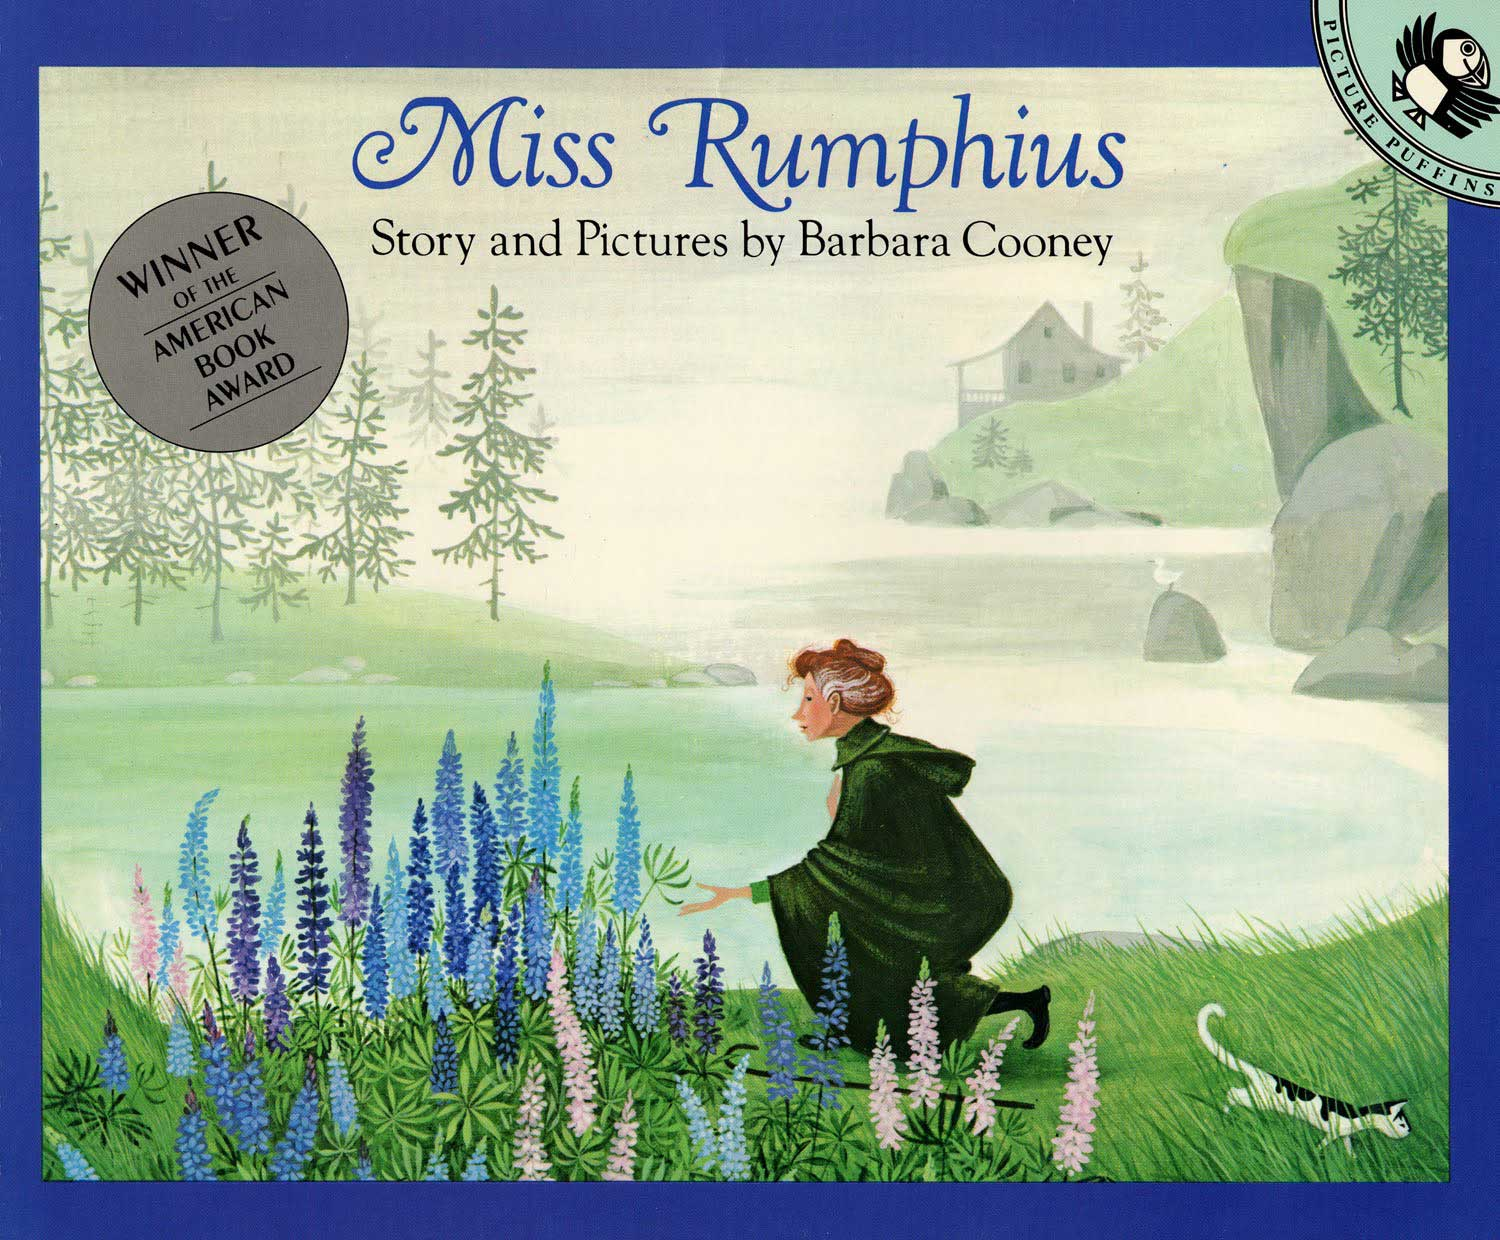 Miss Rumphius, by Barbara Cooney.                                                                                                                            The true story of a woman who spread flower seeds everywhere she went, filling the coast of Maine with blossom.                                                                                                                            Buy now: Miss Rumphius